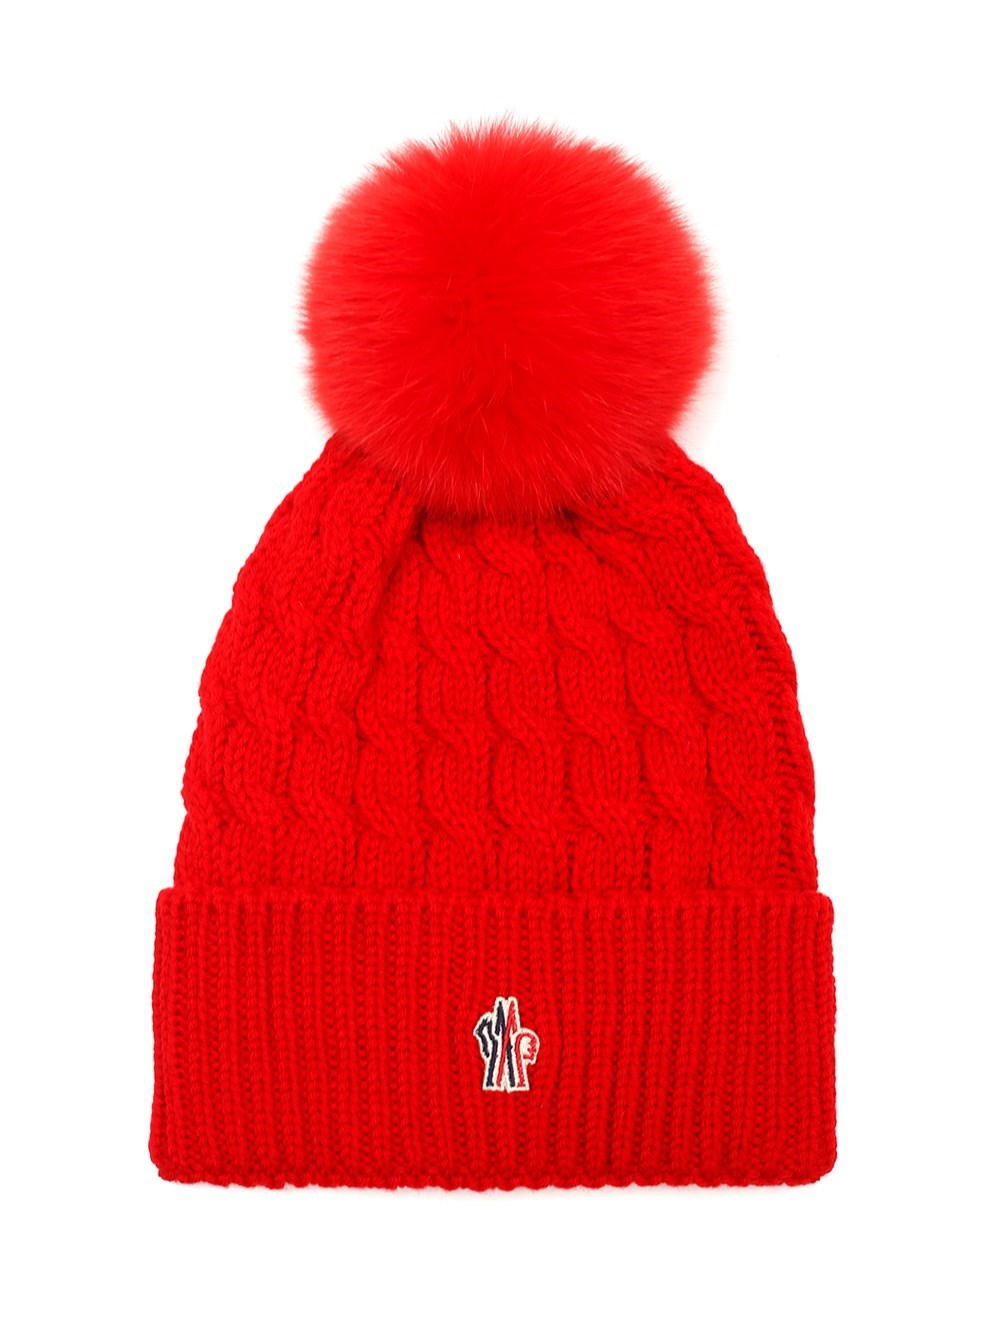 MONCLER GRENOBLE Red Wool Beanie